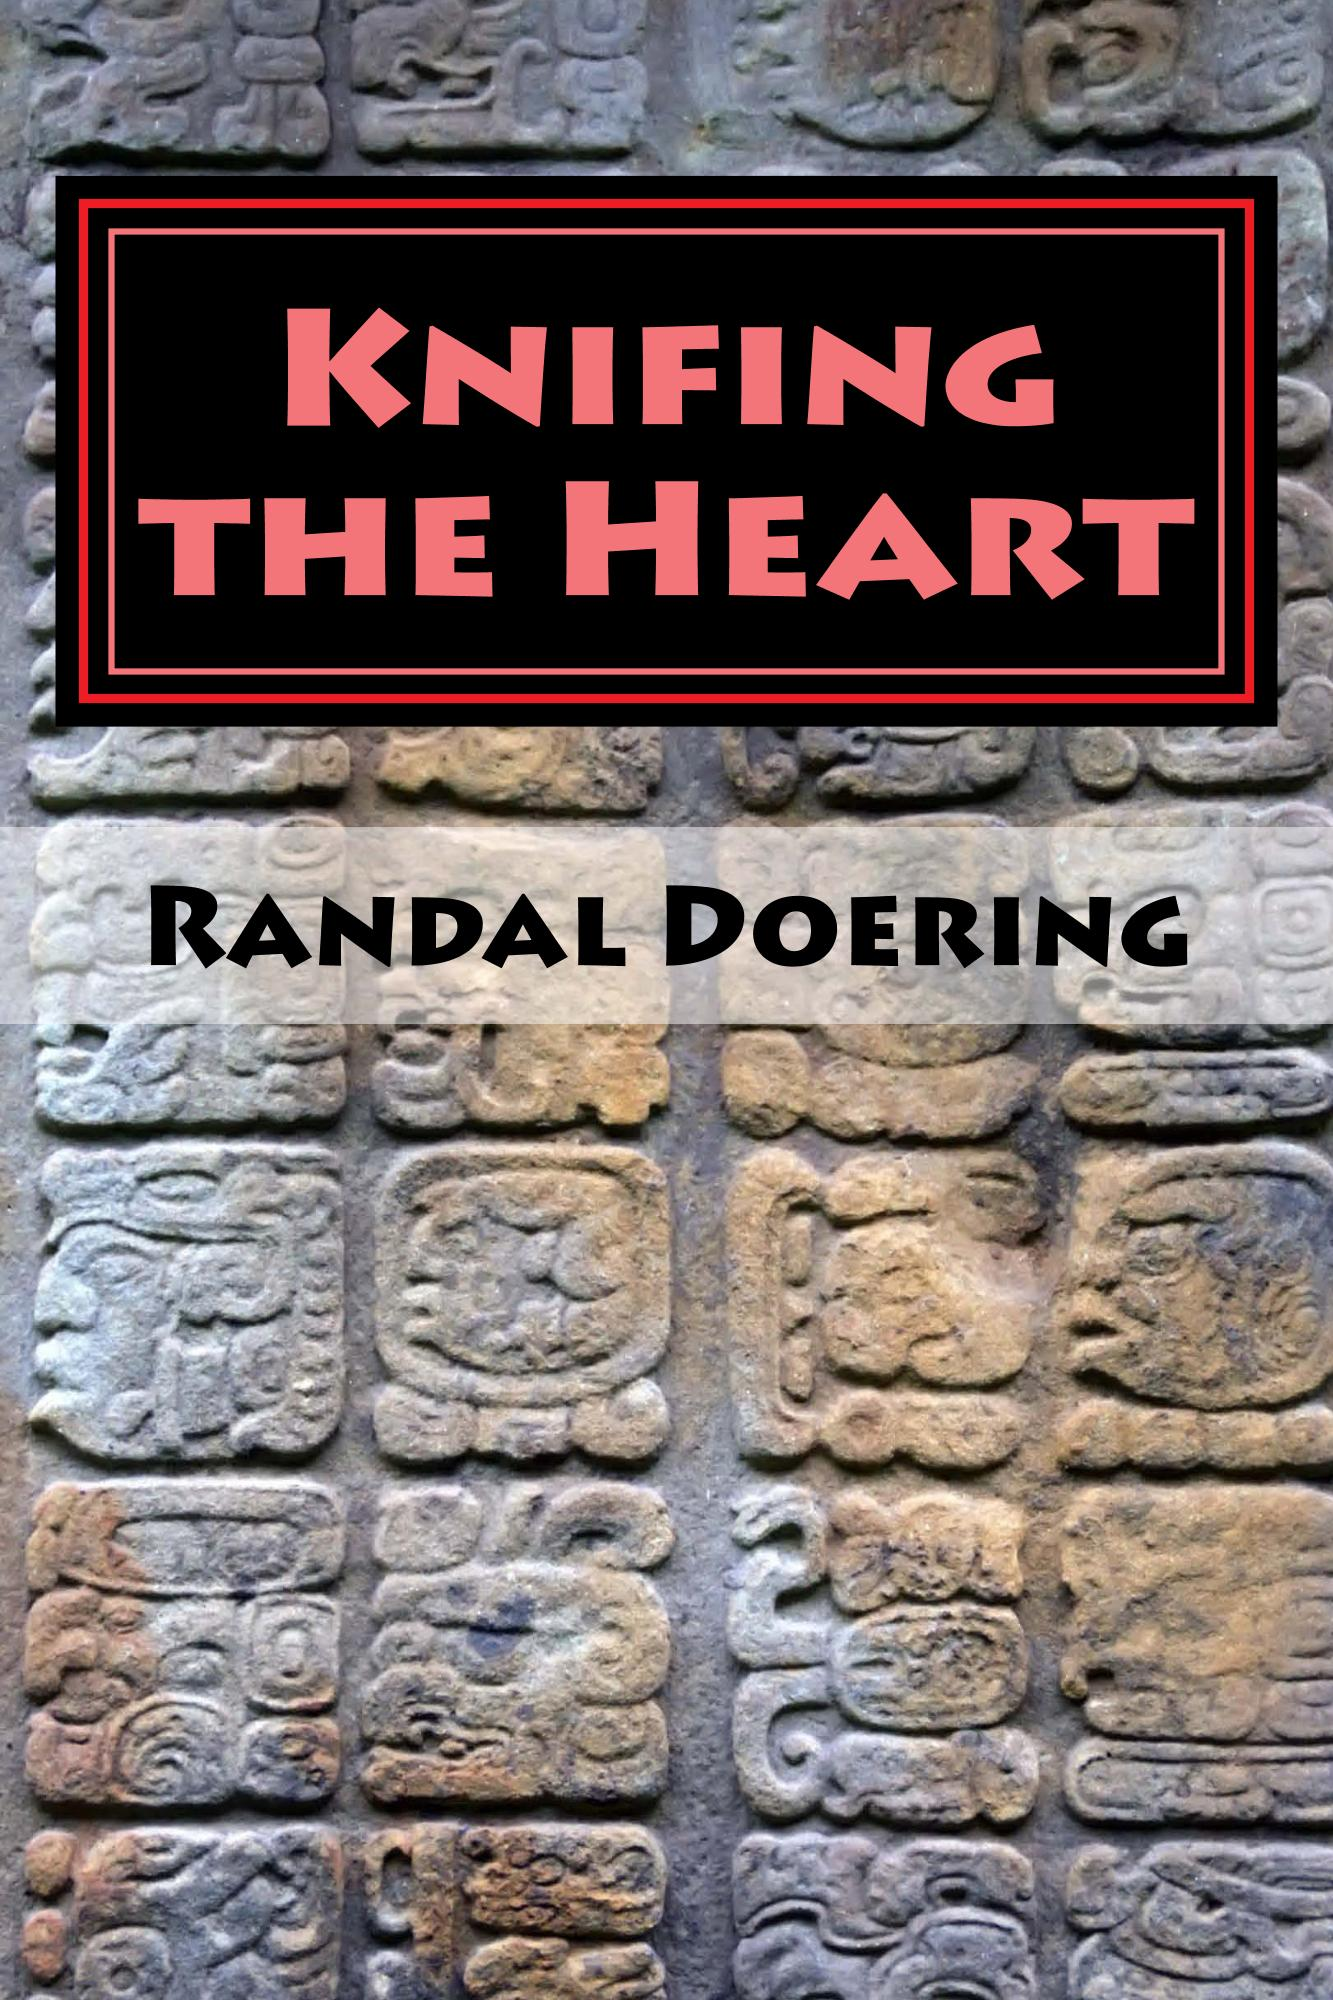 Knifing the Heart